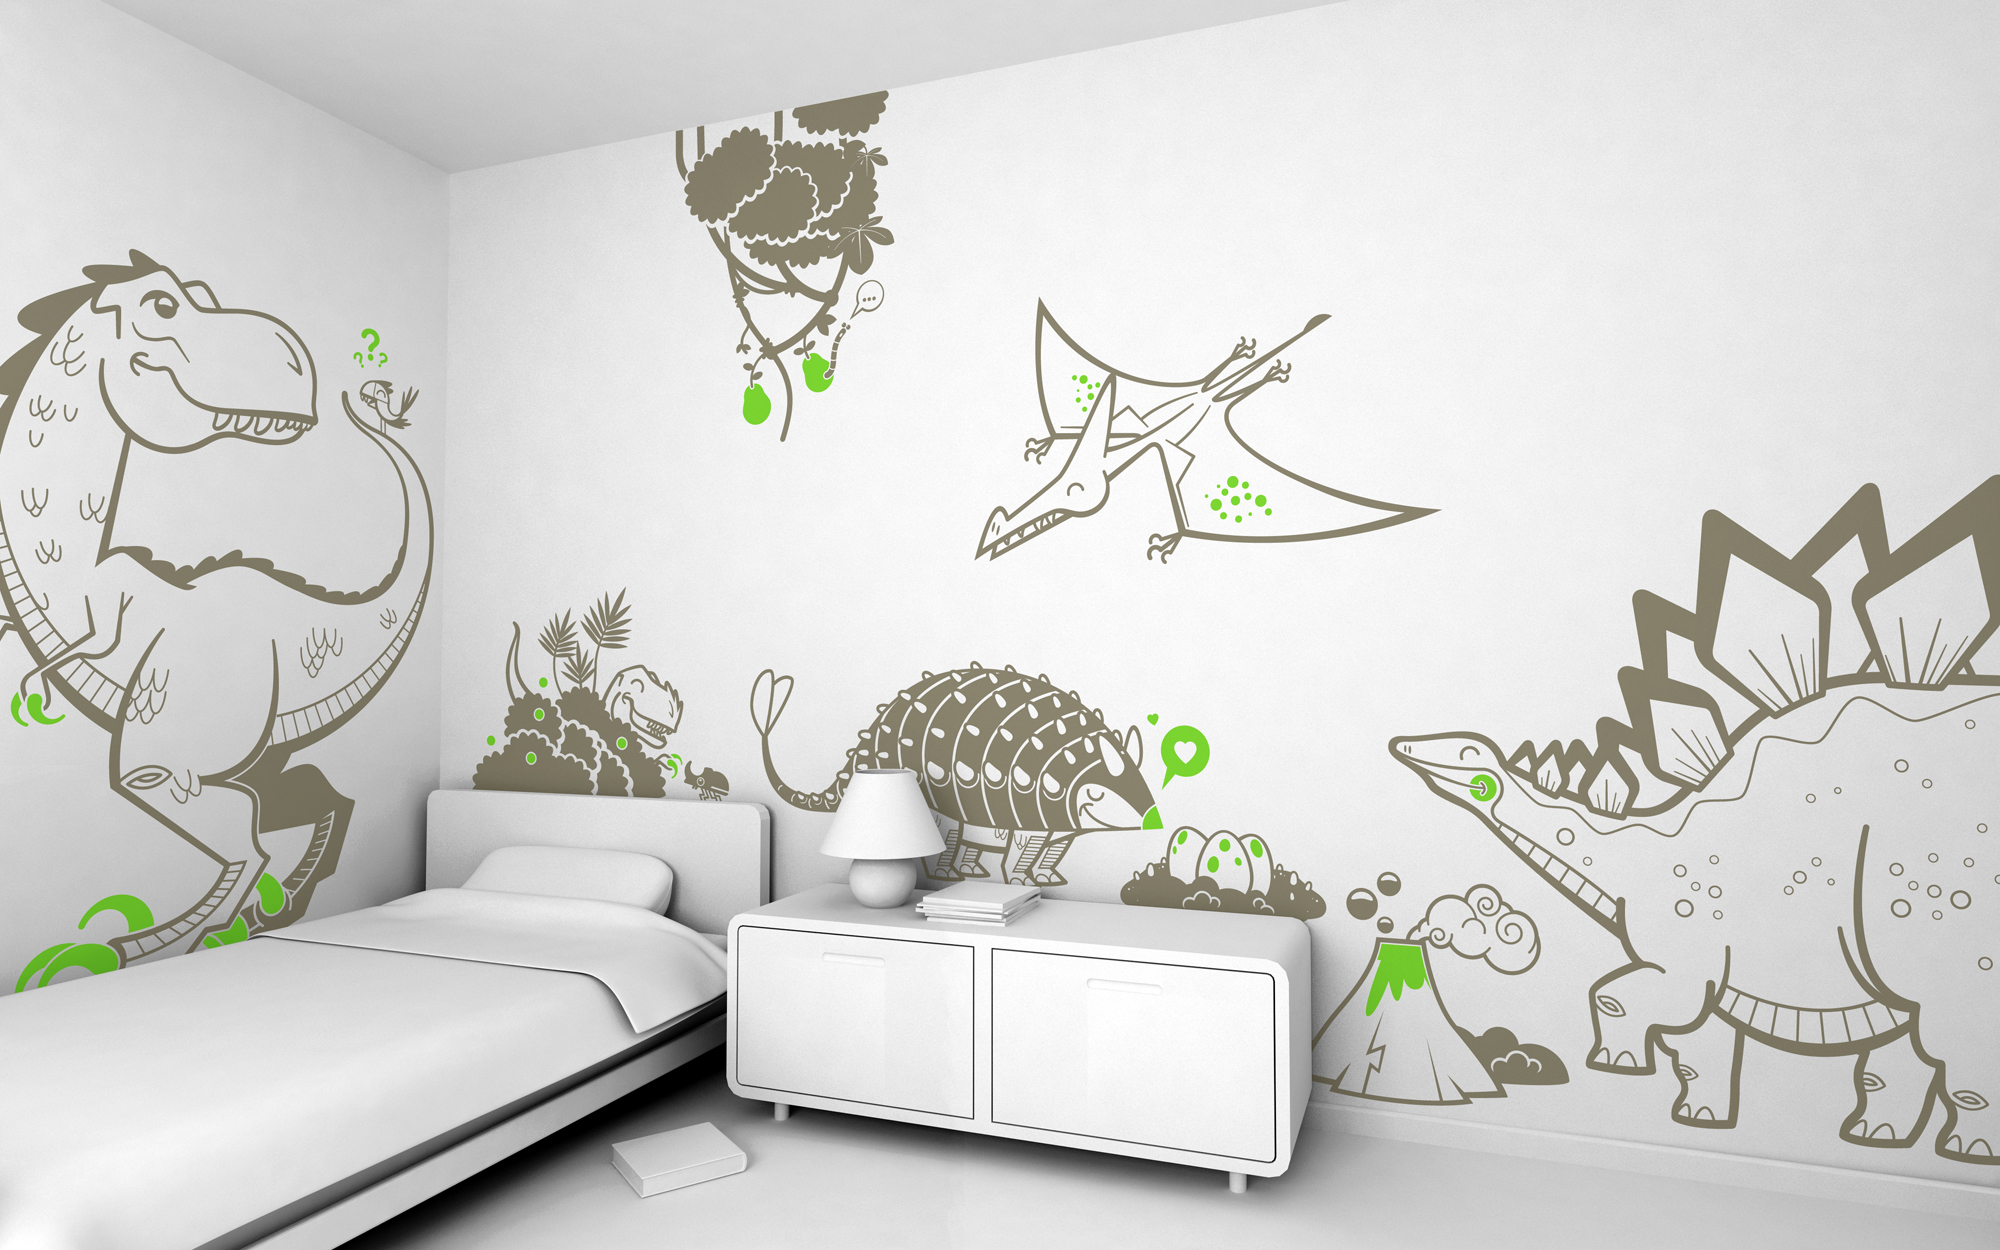 Giant kids wall decals by e glue studio at for Wall decals kids room